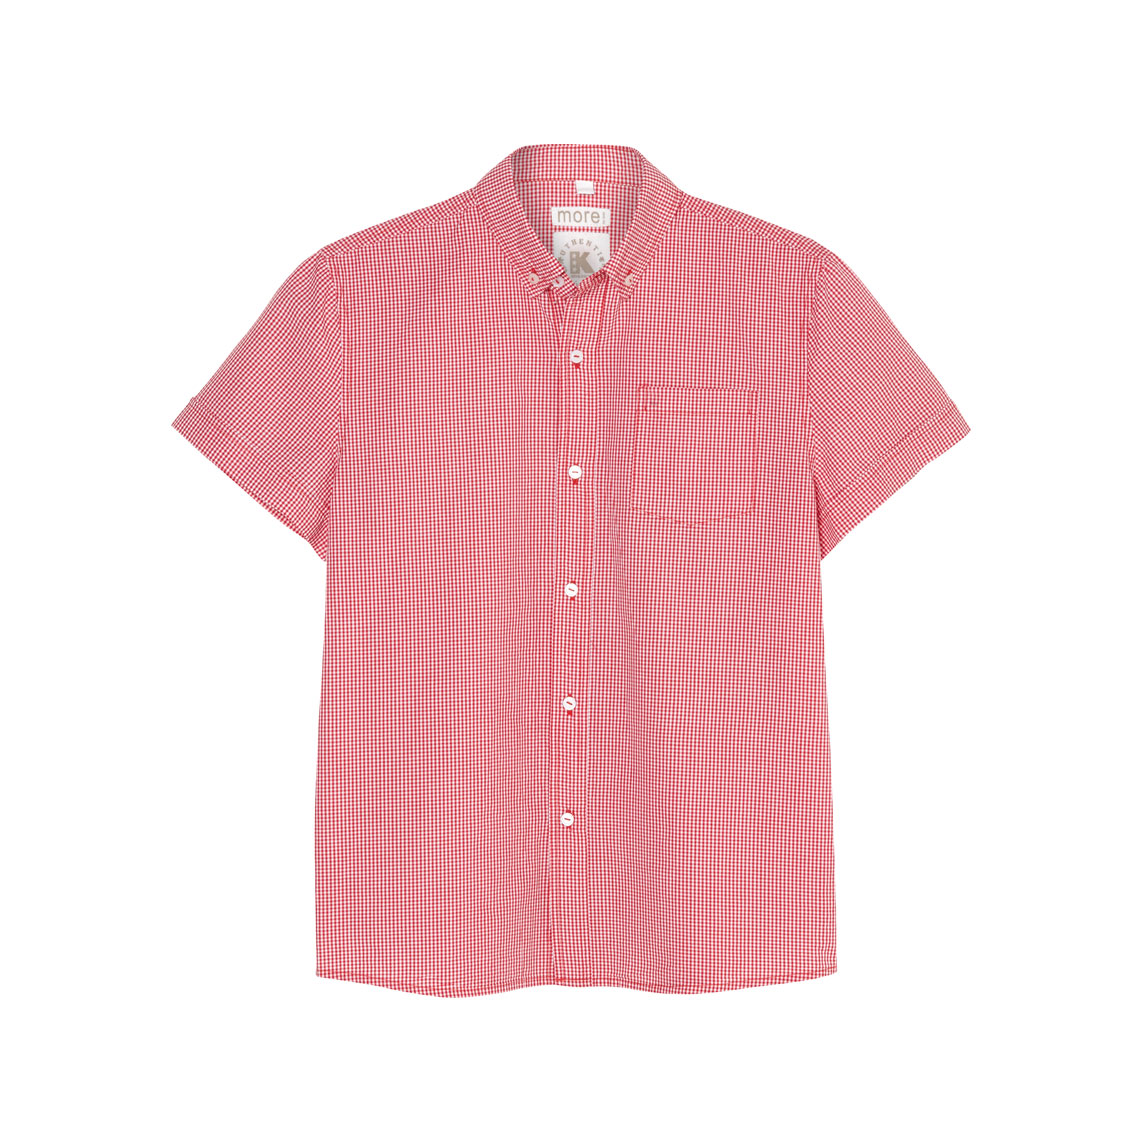 Boys shirt short sleeve red check front